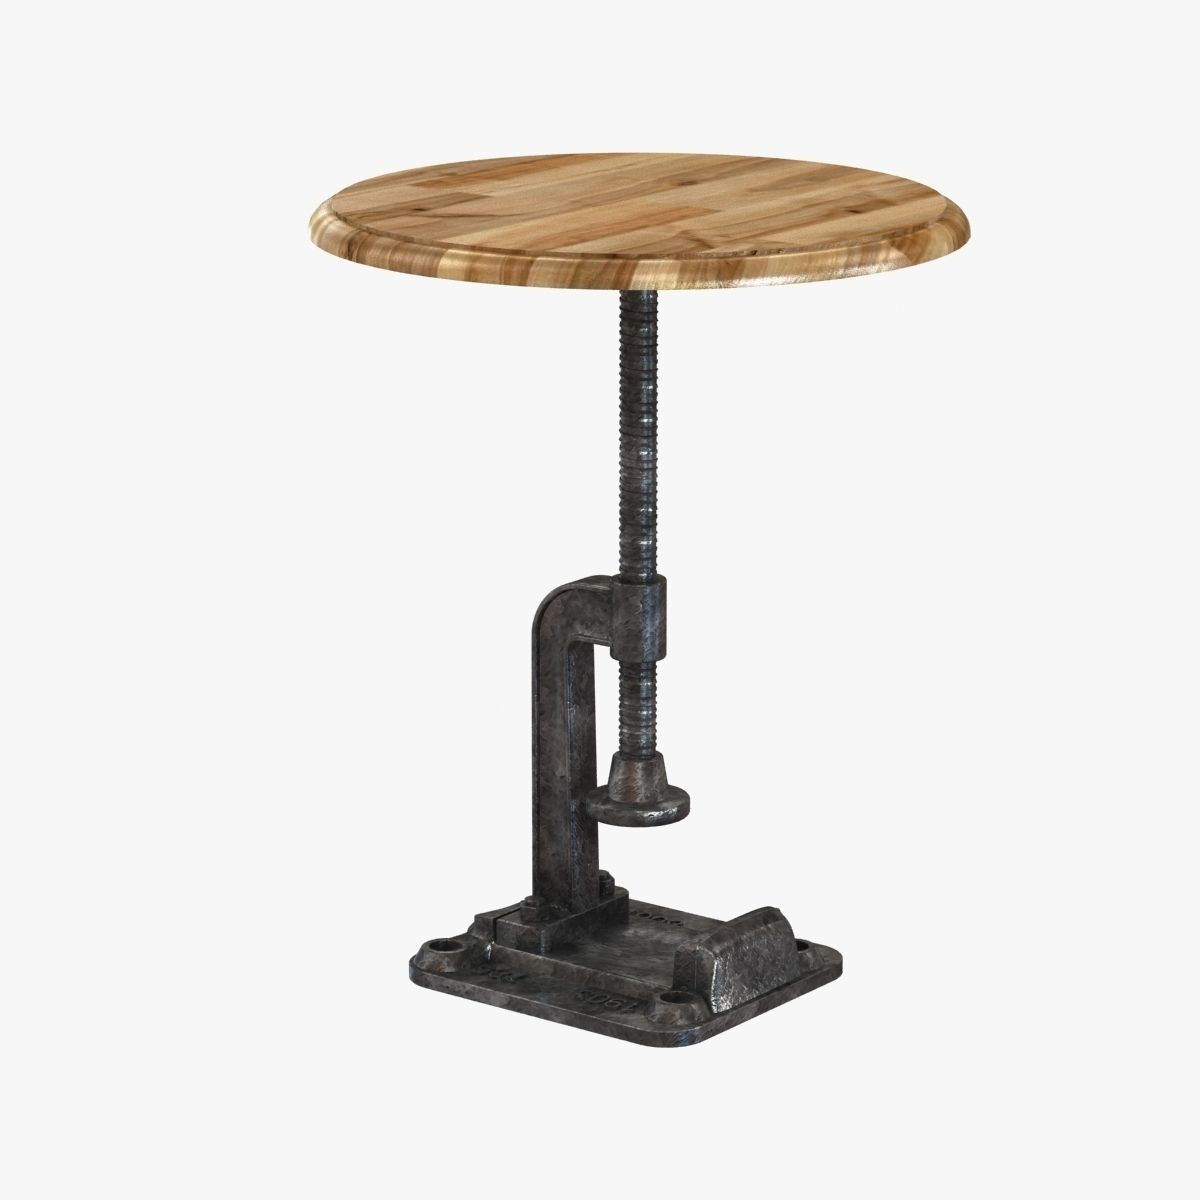 Reclaimed Wood Rustic Clamp Side Table Stool 3d Model Max Obj 3ds Fbx Mtl 1  ...